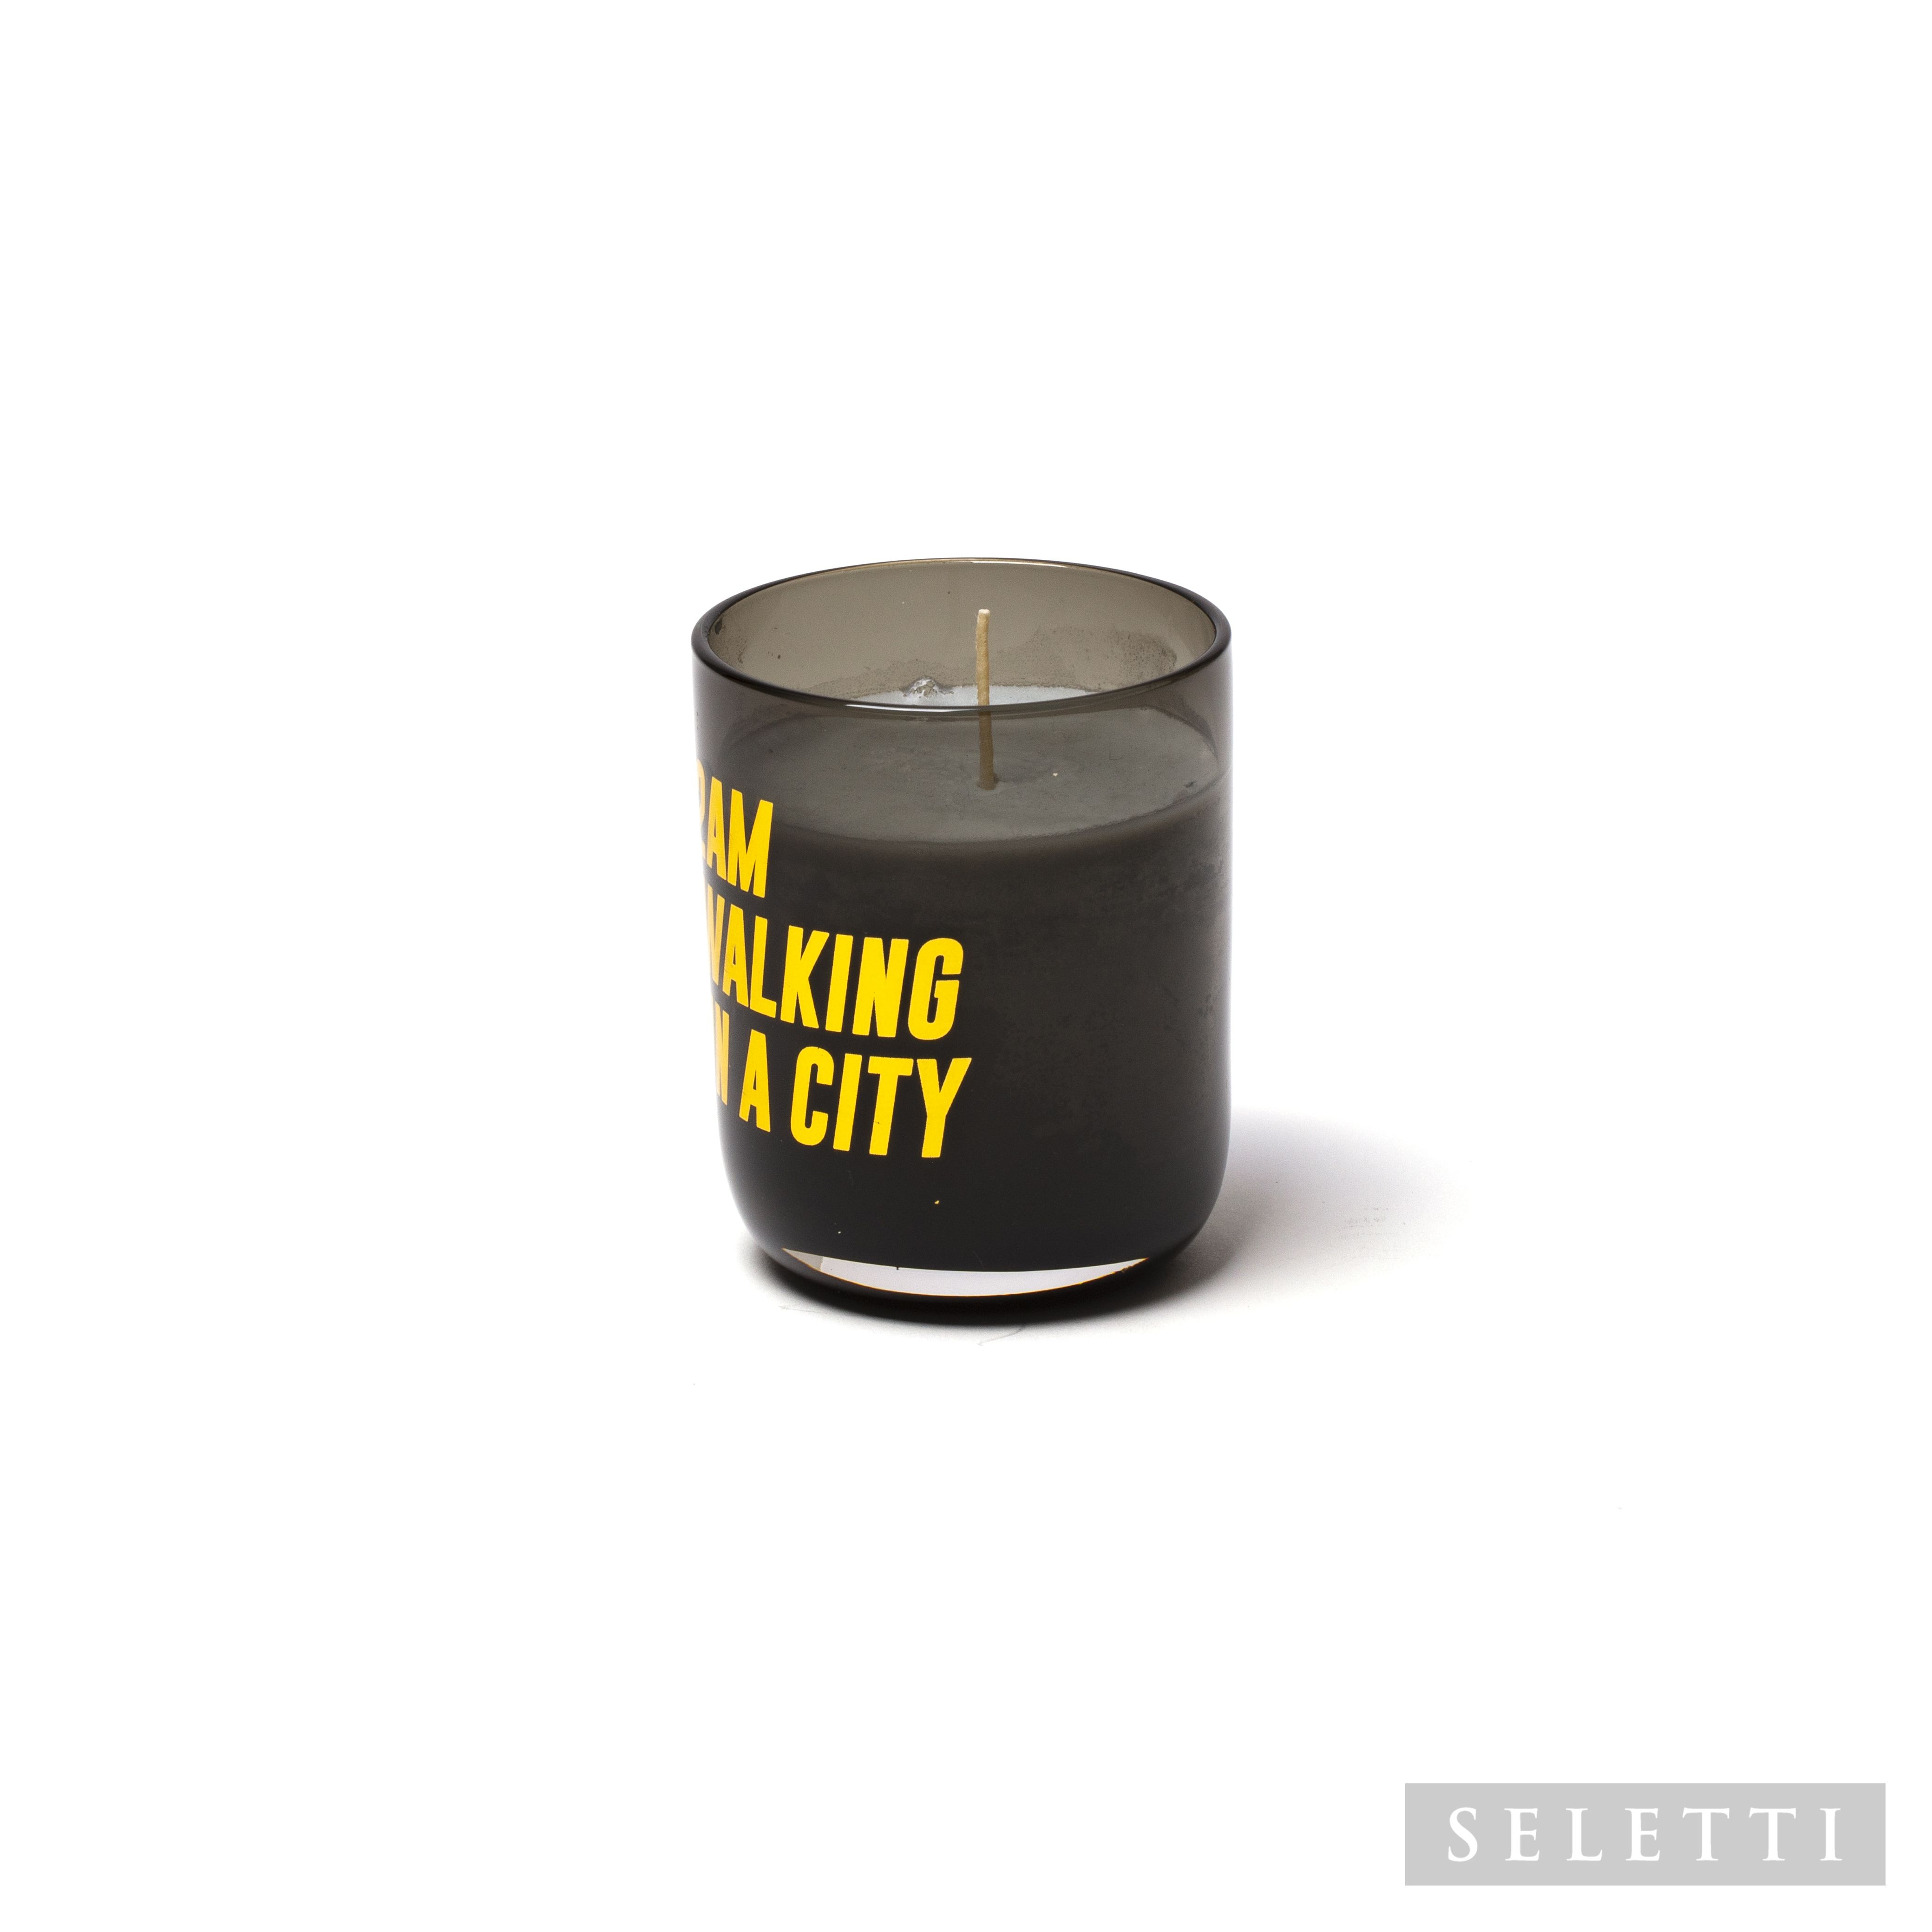 Seletti | Candle | 11172WALKING IN A CITY